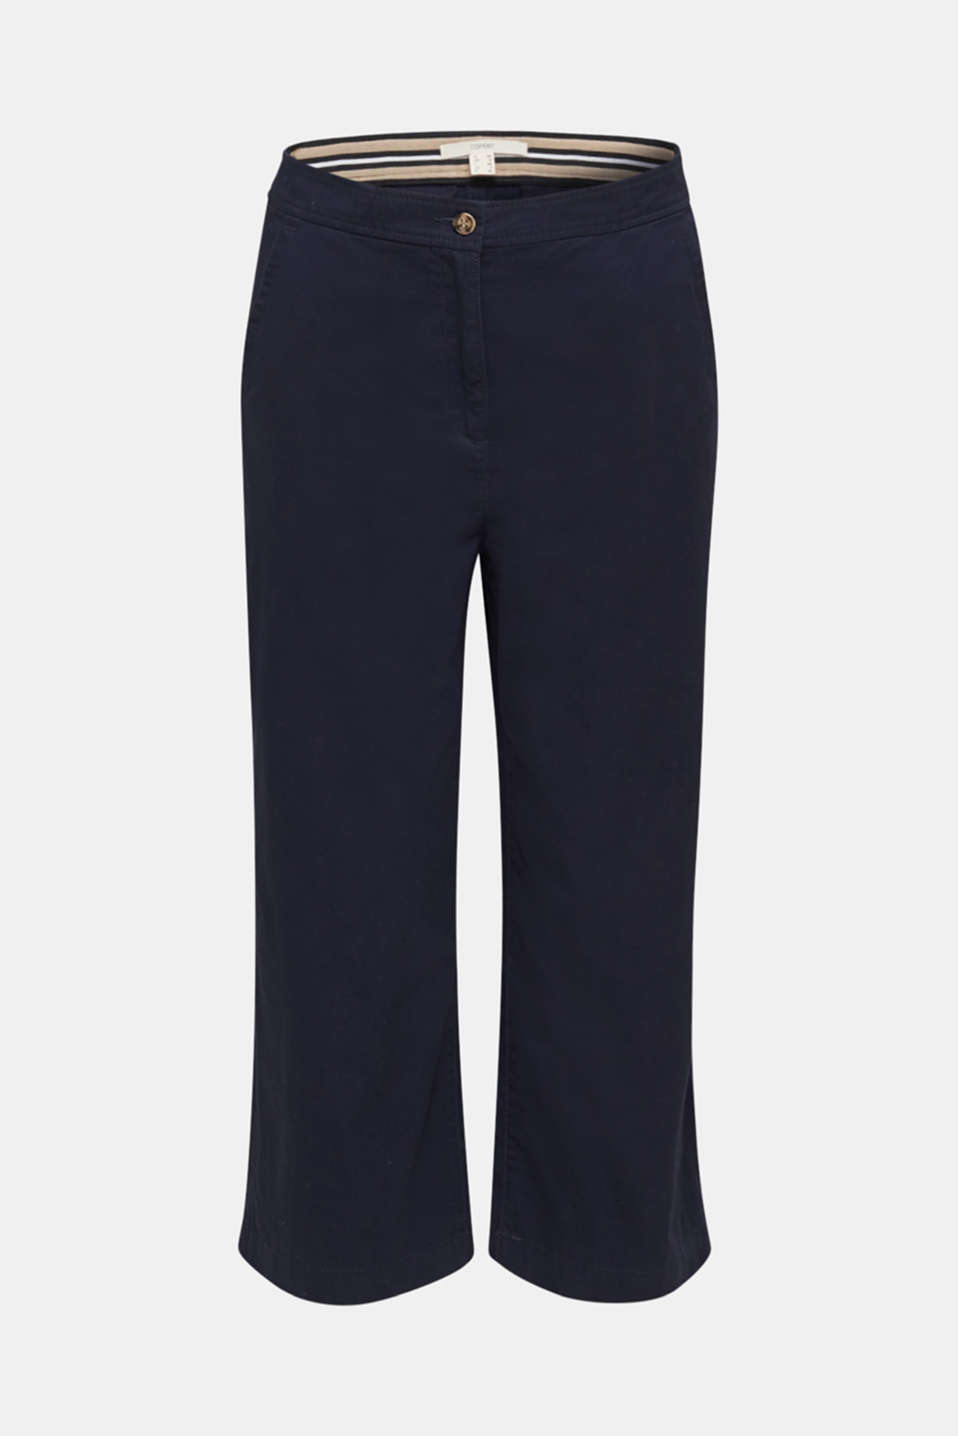 Sporty culottes, 100% cotton, NAVY, detail image number 8